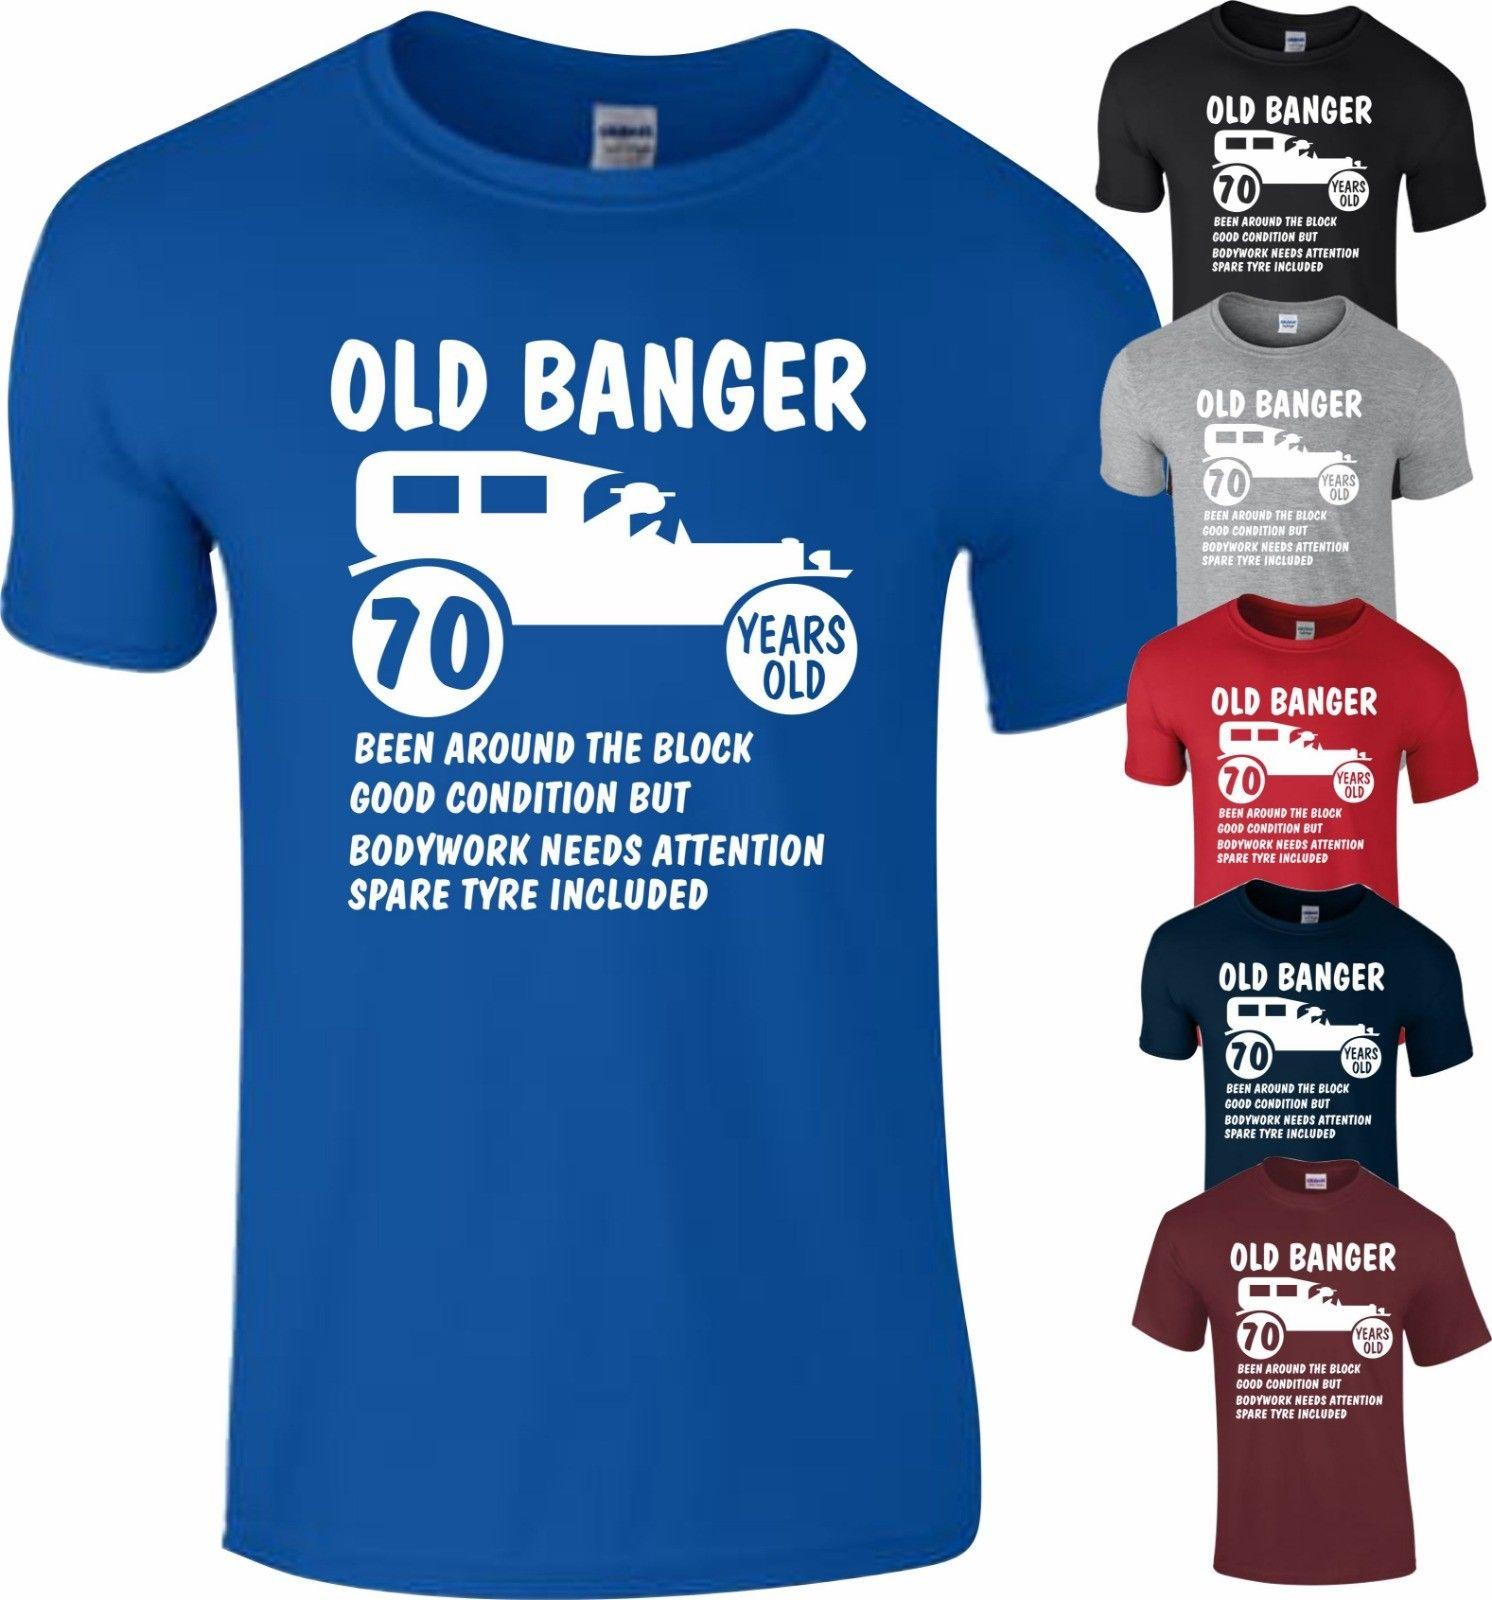 70th Birthday 1948 Age 70 Years Old Banger Present Gift T Shirt Funny Top Unisex Casual Tee Clever 10 From Monkey